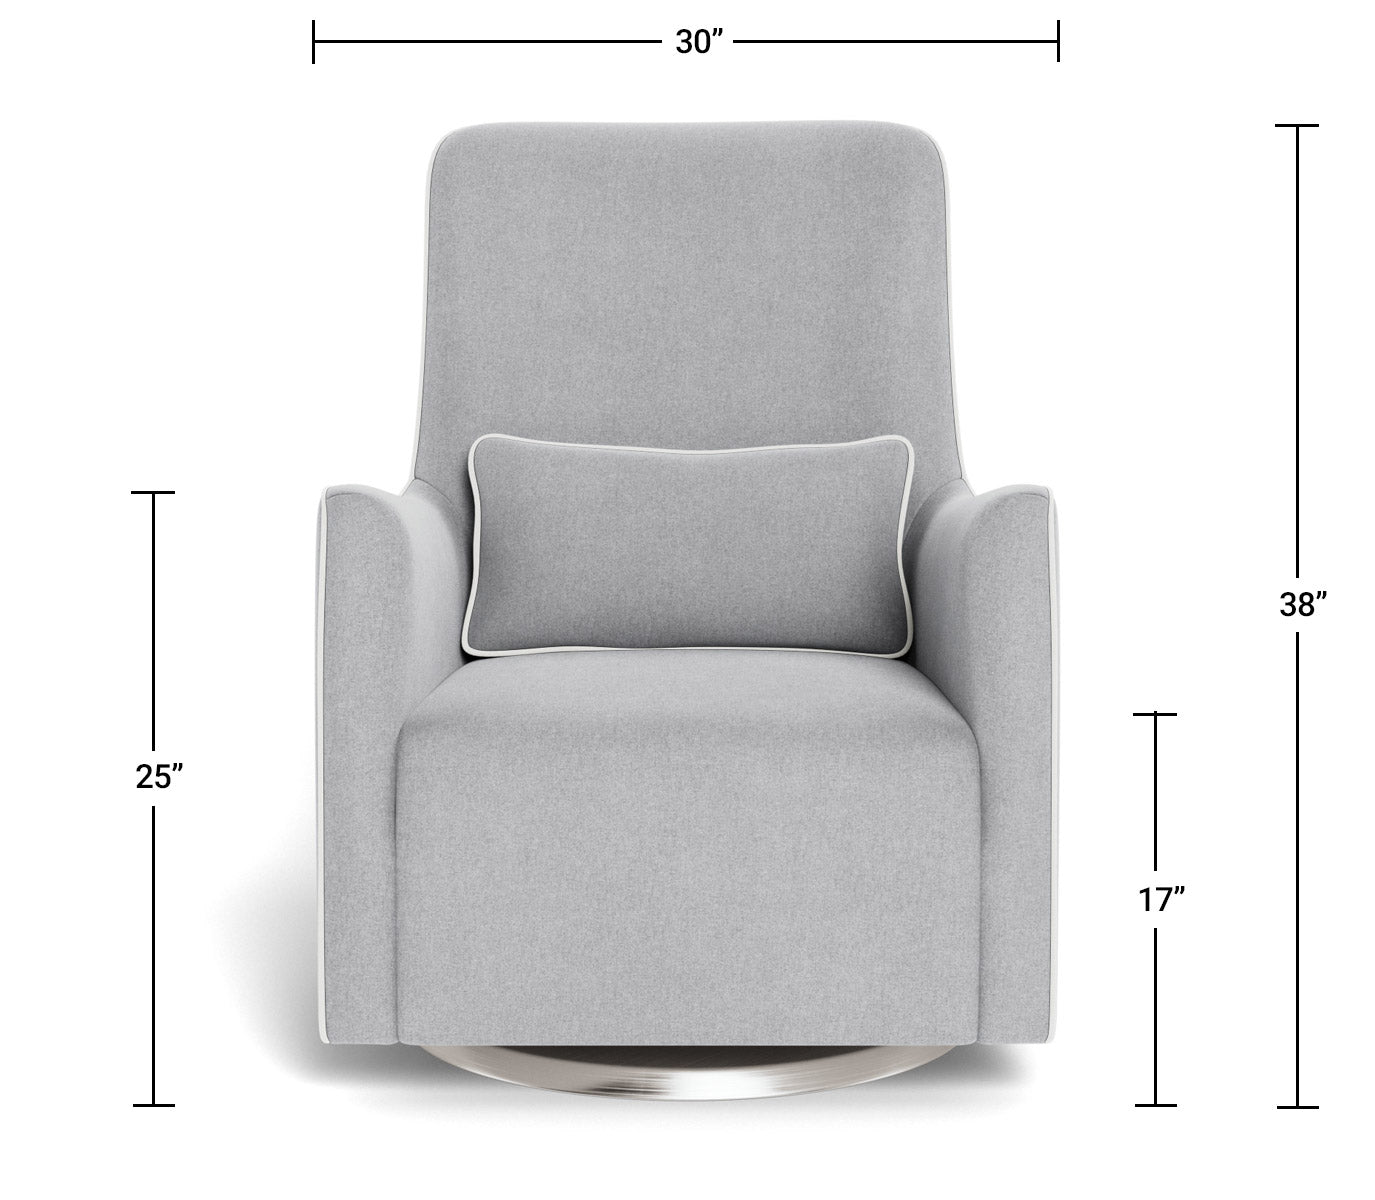 Modern Nursery Glider Chair - Grazia Glider Chair Dimensions Front View